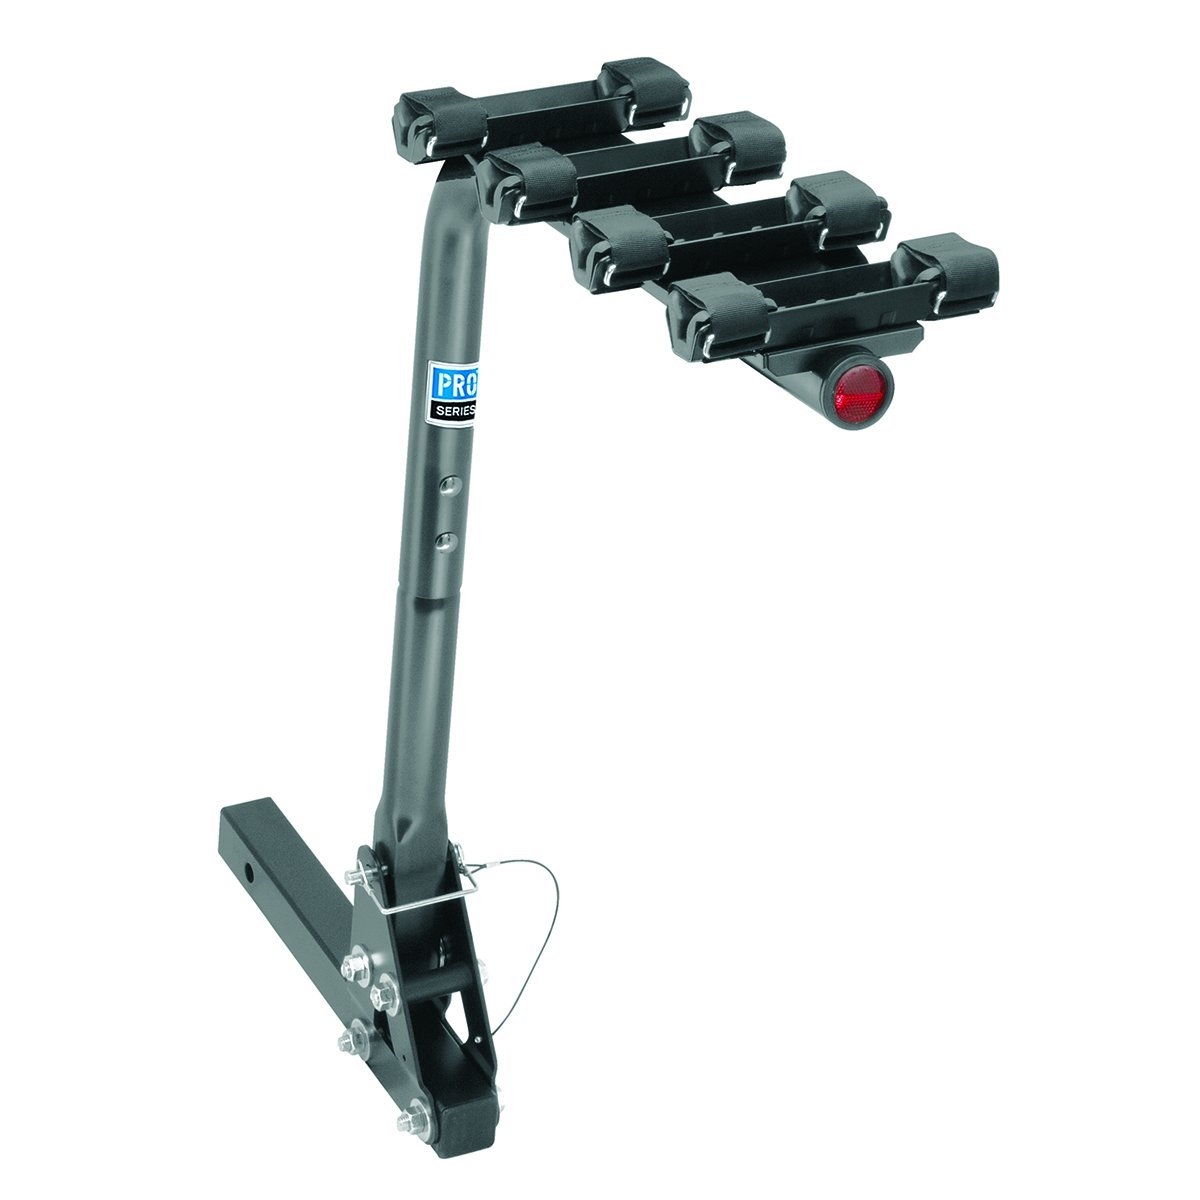 Pro-Series 63123 Eclipse Black 3-Bike Hitch Mounted Bike Carrier